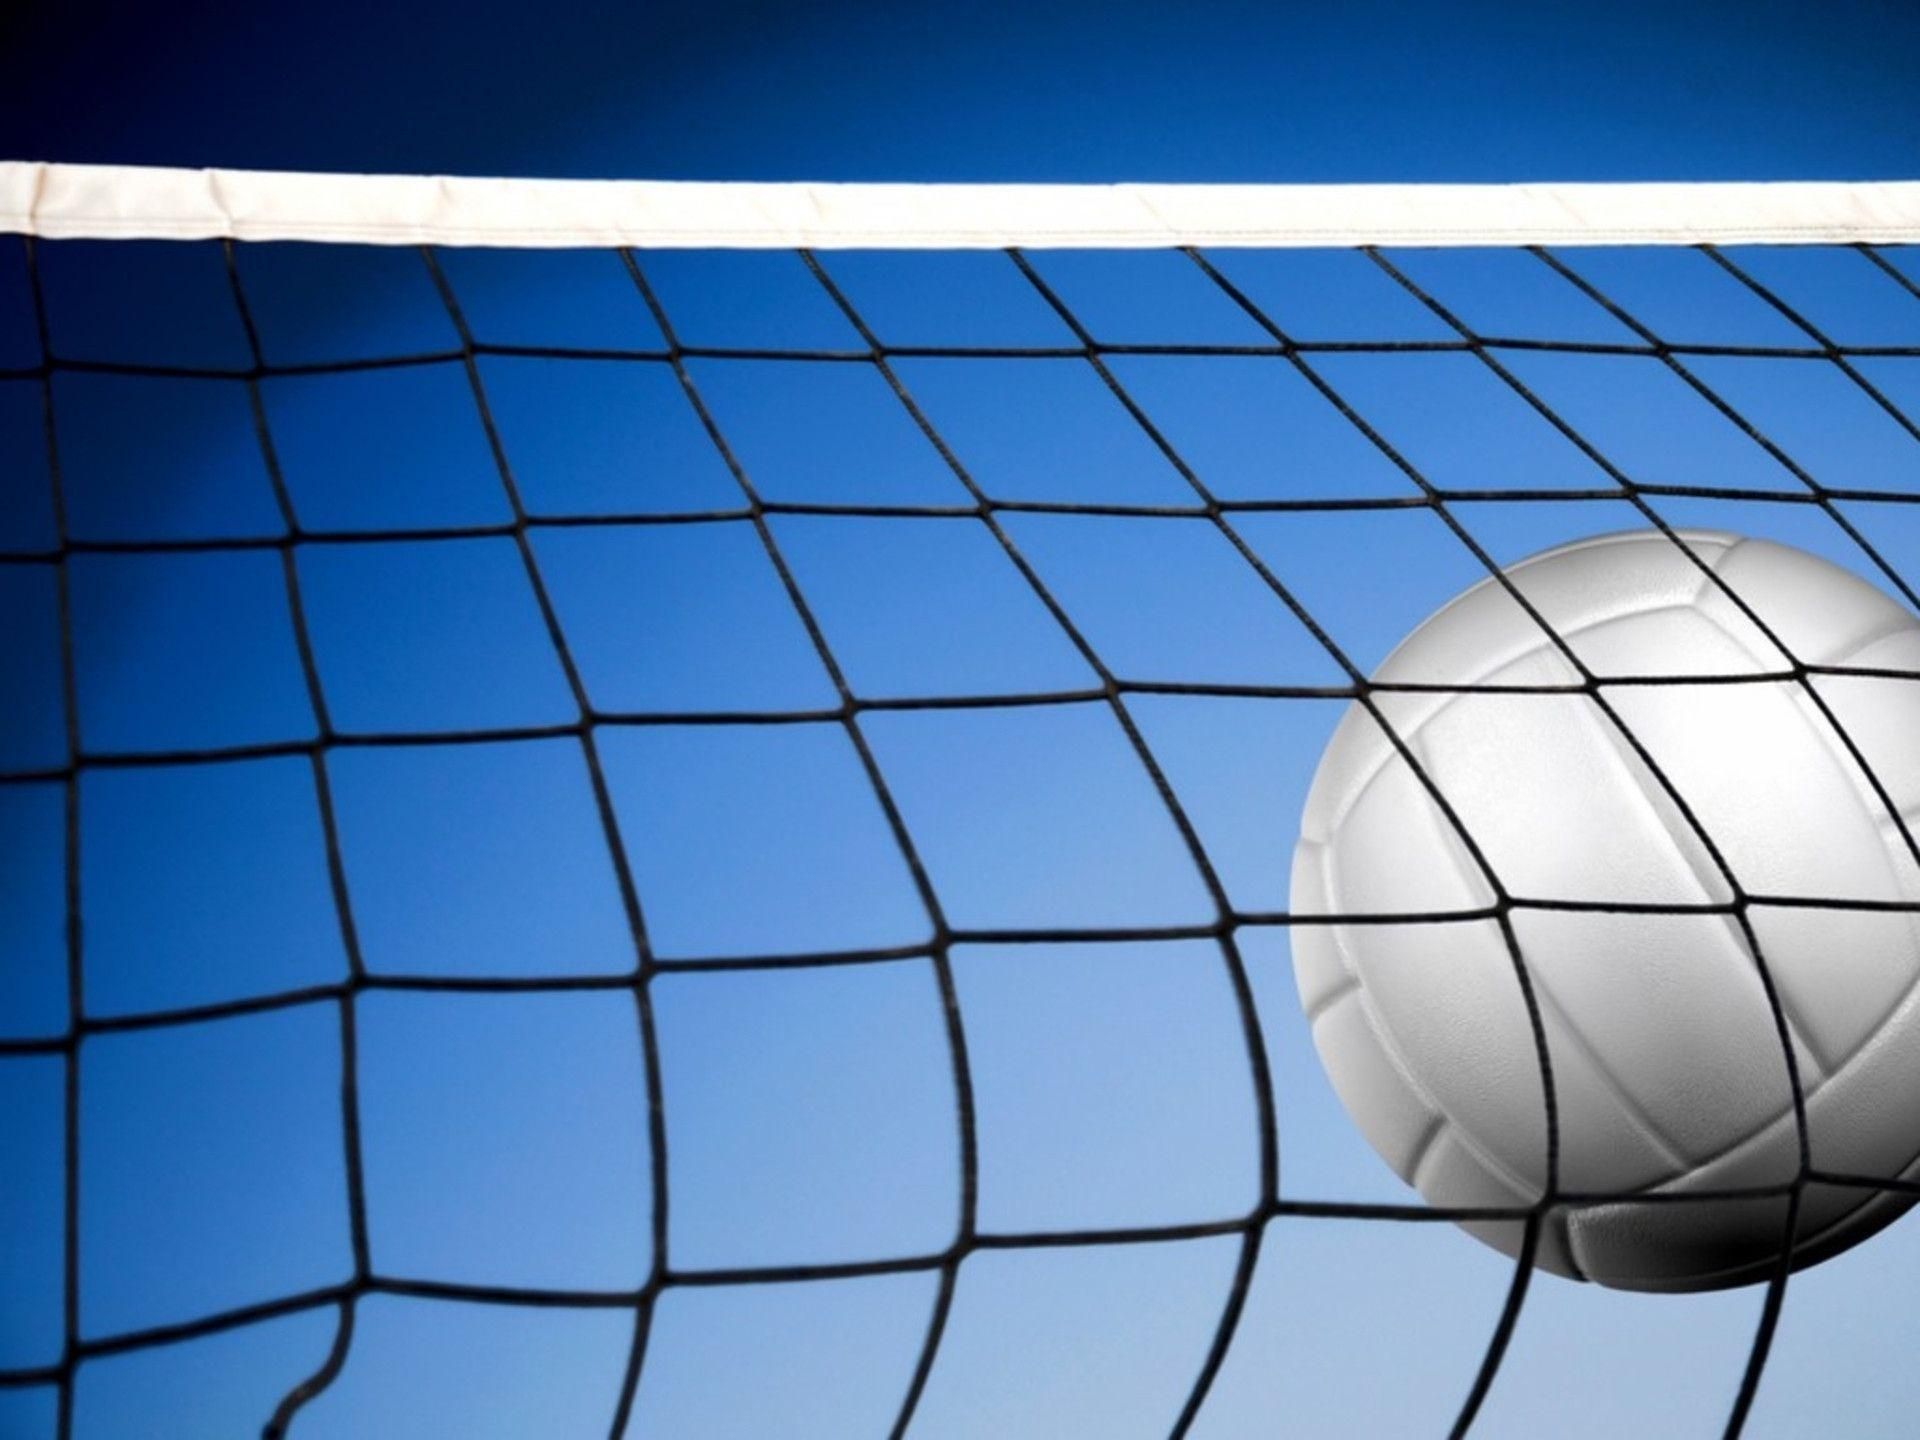 Cool Volleyball Wallpaper For Iphone Images & Pictures - Becuo